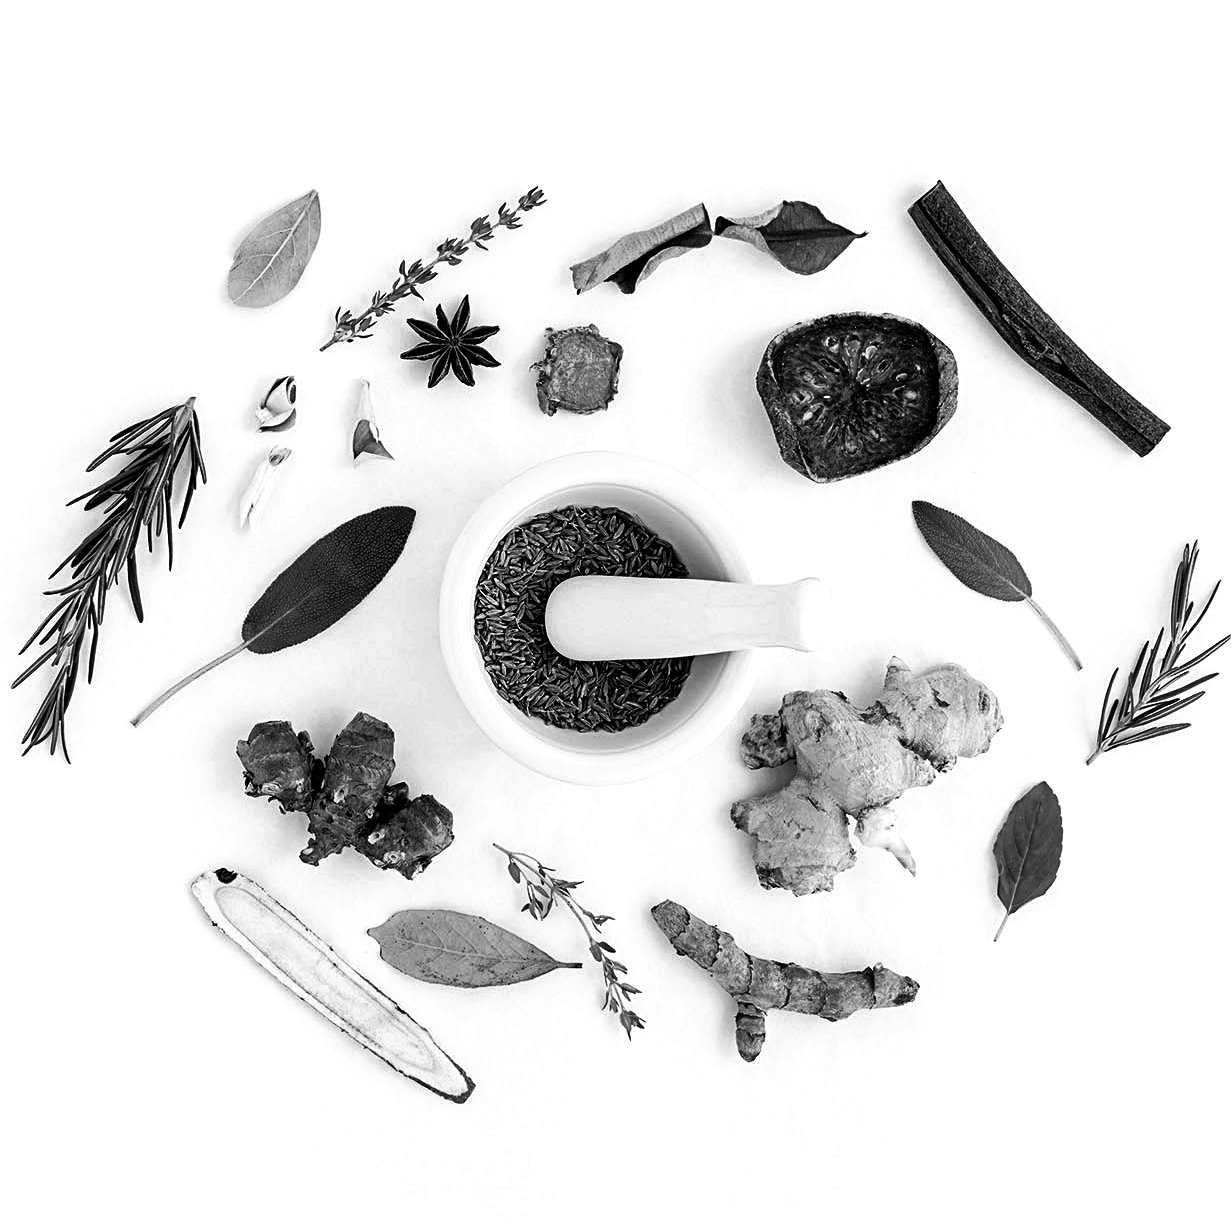 functional-medicine_the-integrated-brain-and-spine-center-for-functional-neurology-and-medicine_integrated-physicians-medical-group_wellness_holistic_care_treatments_natural-b&w(1).png